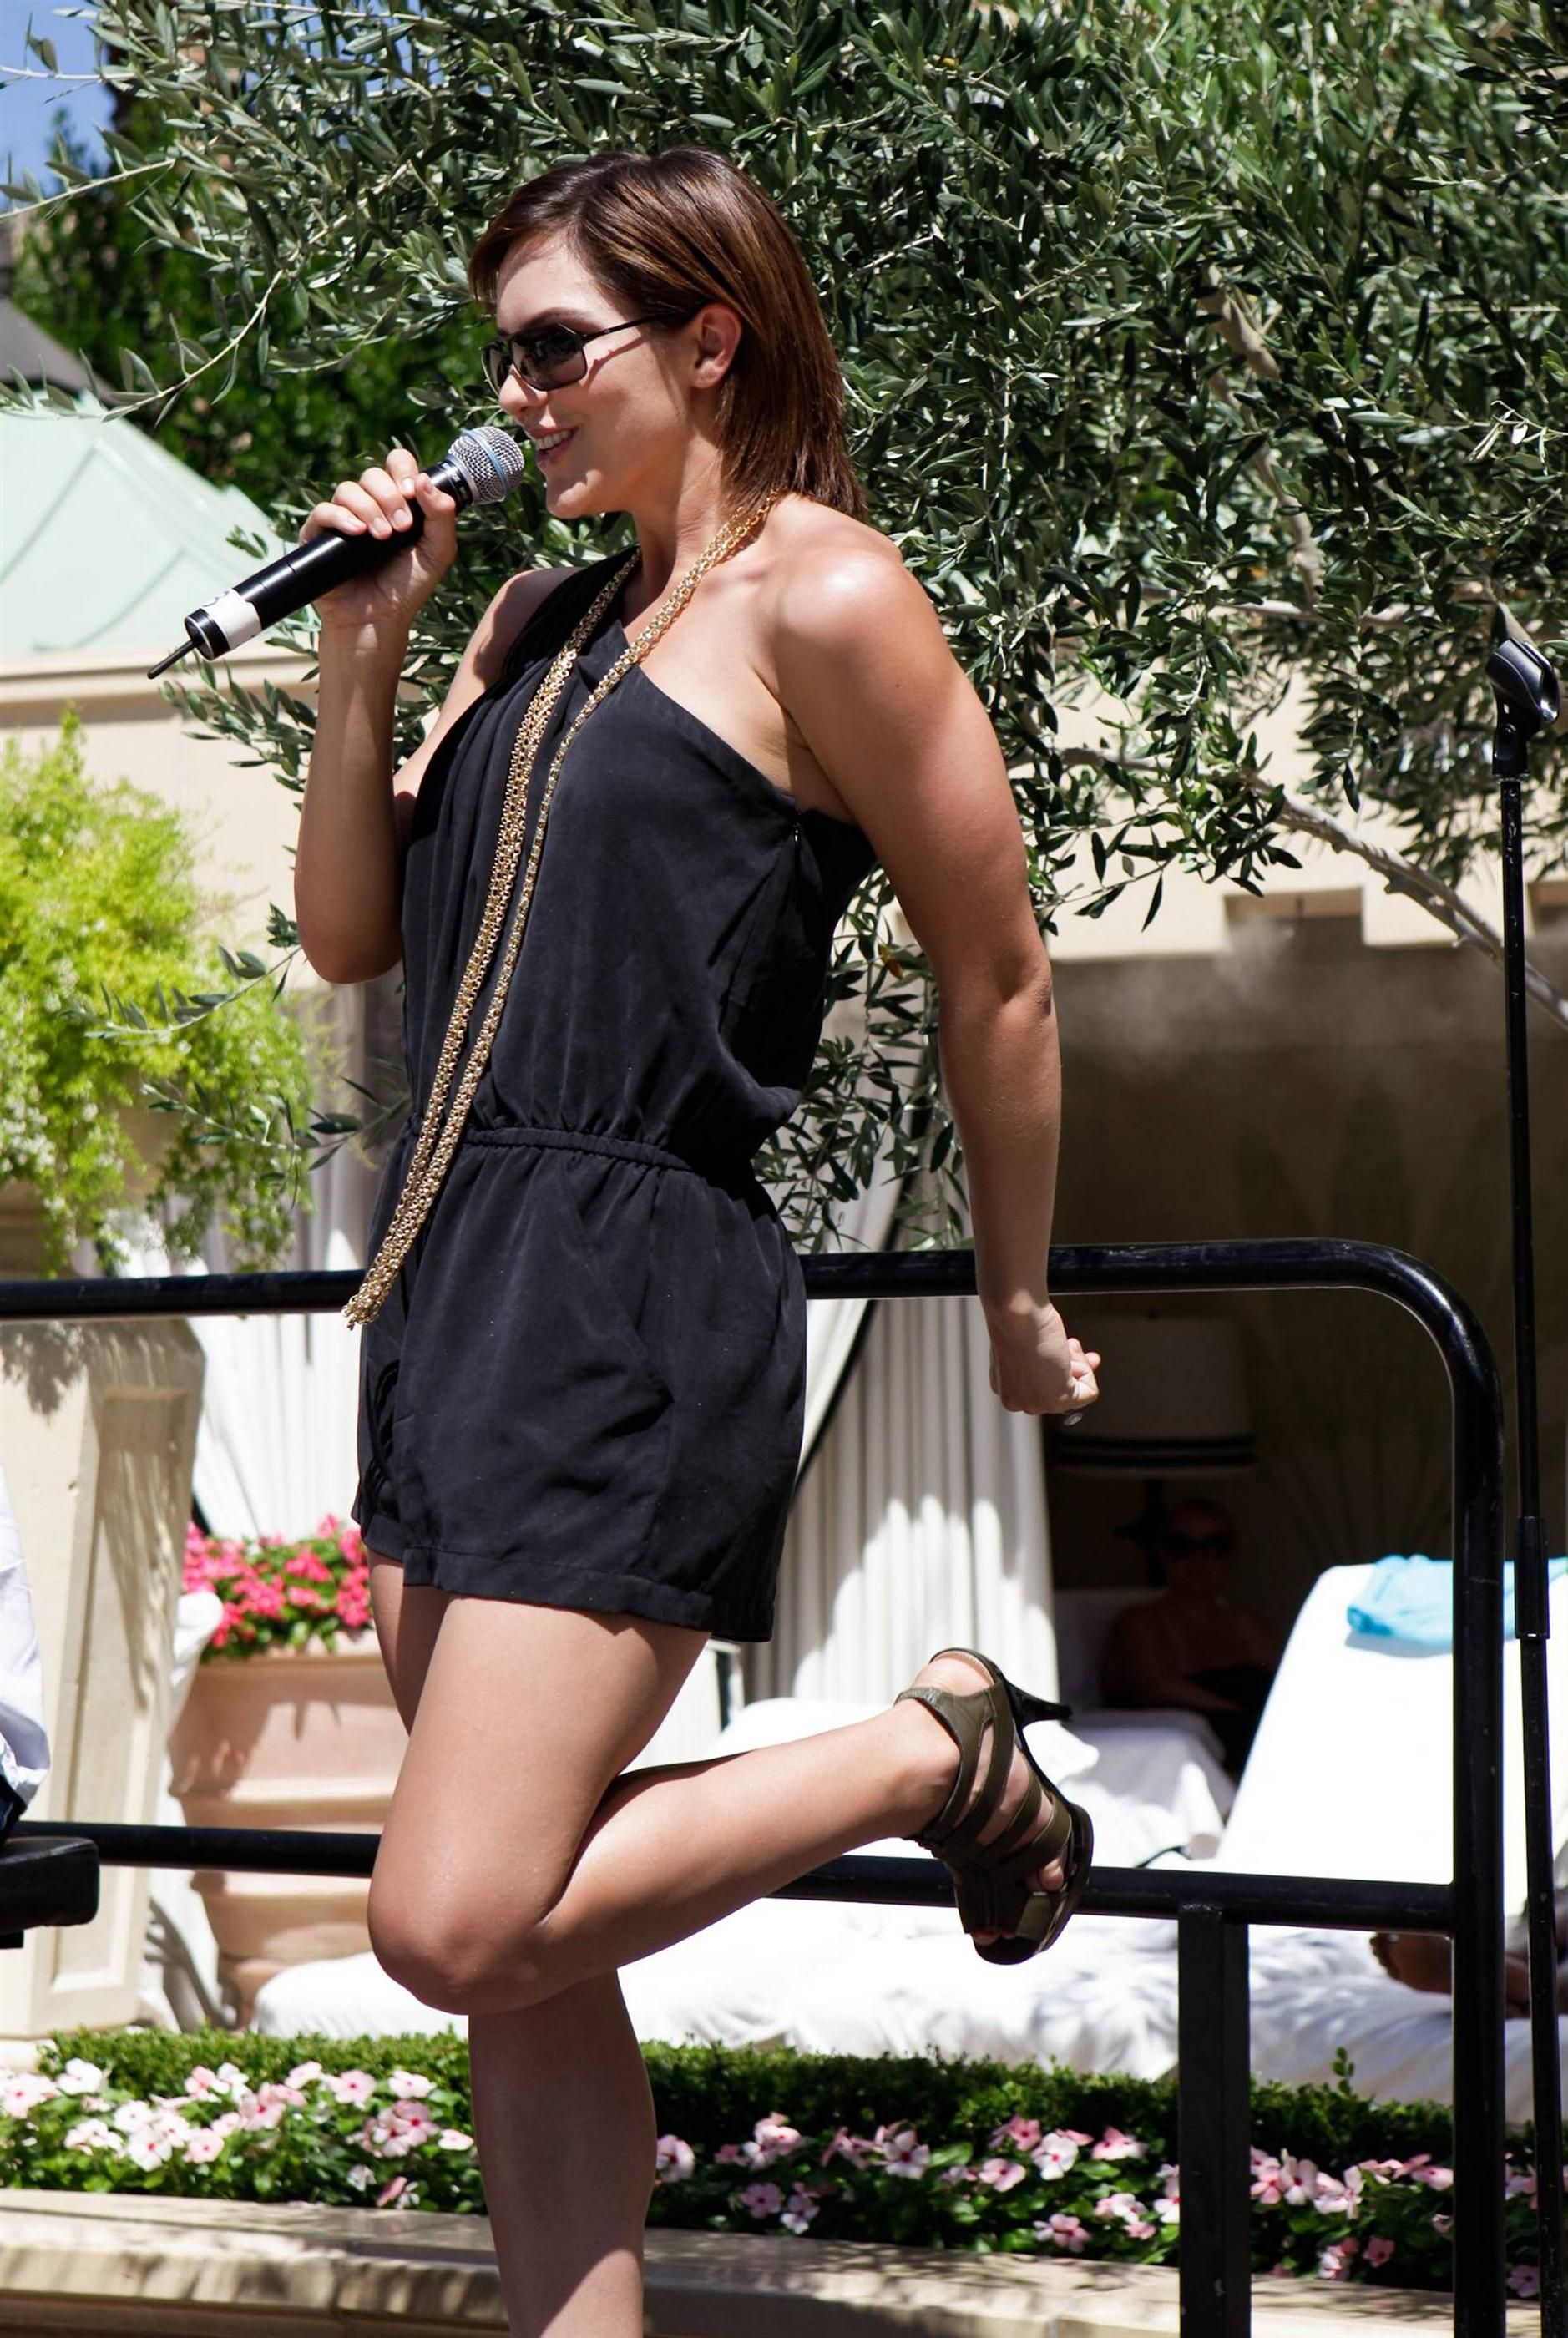 Picture ID. 265692 | Katharine mcphee, Style inspiration ...